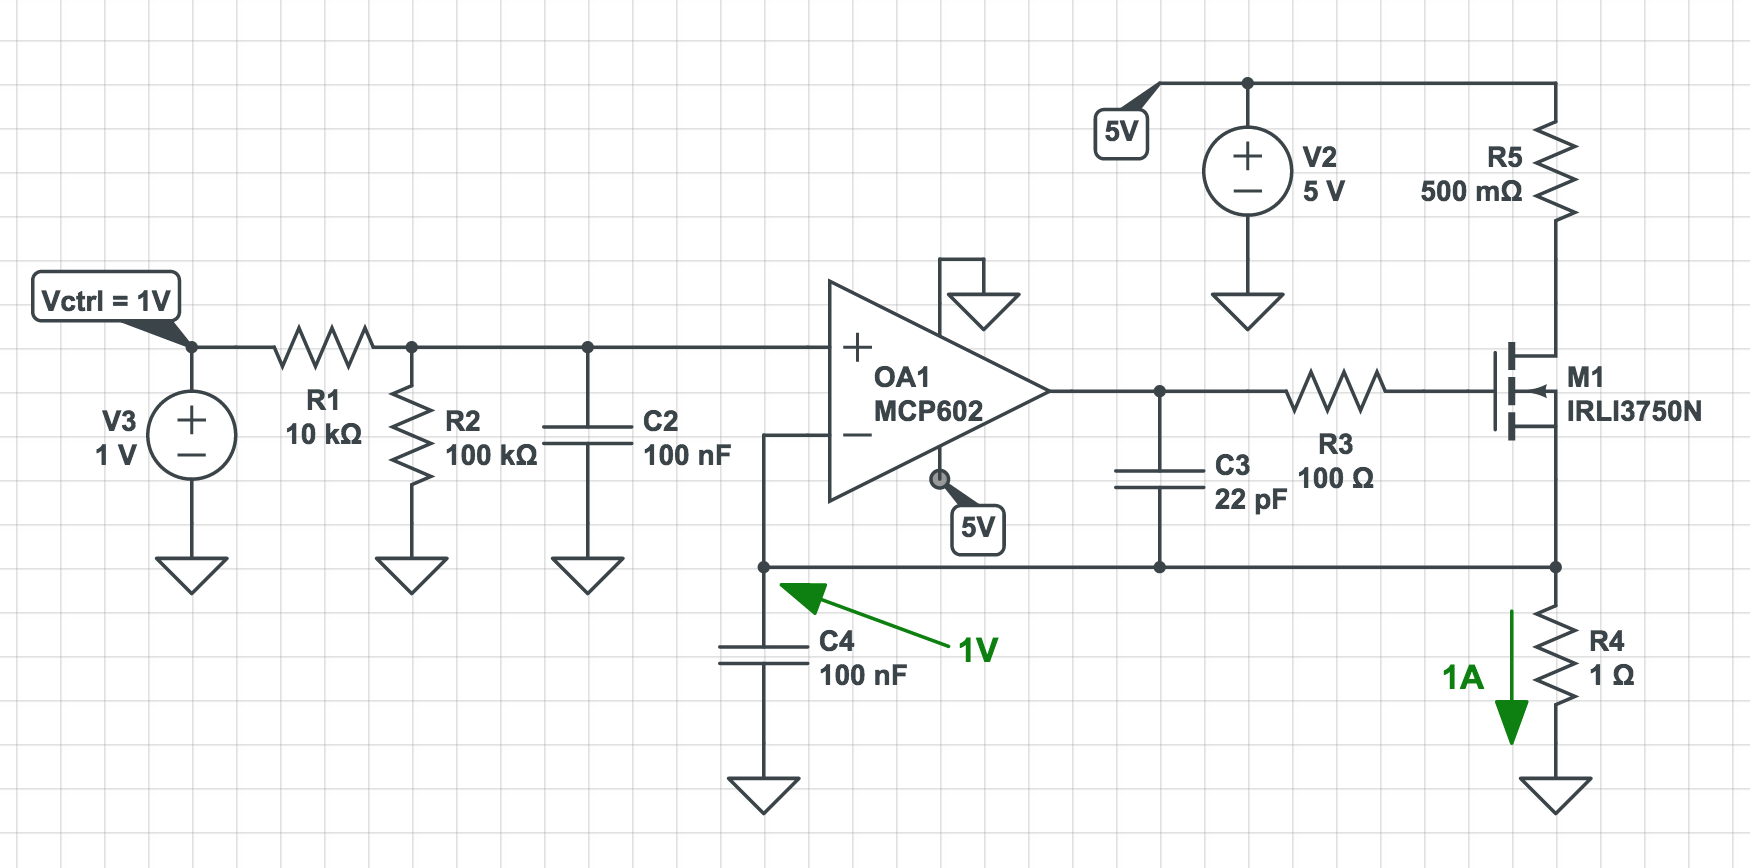 Pleasant Voltagecontrolled Current Source Circuit Diagram Tradeoficcom Wiring Cloud Eachirenstrafr09Org